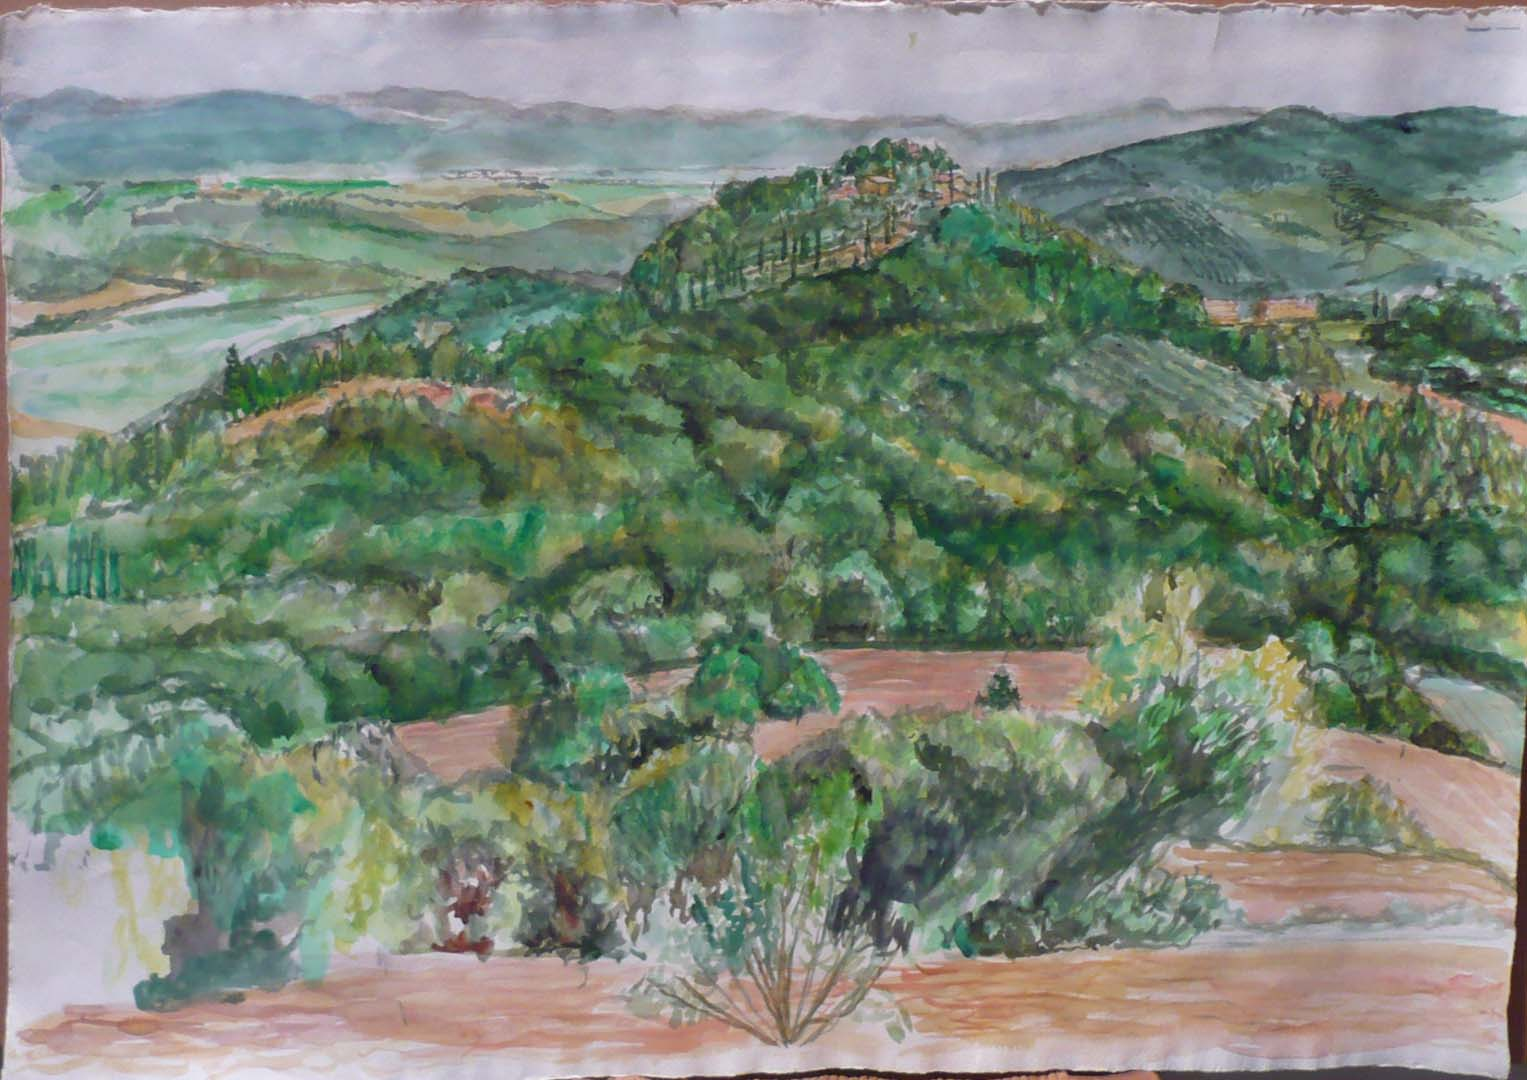 2009 View Towards Lake Tresimano Watercolor on Paper 22.25 x 32